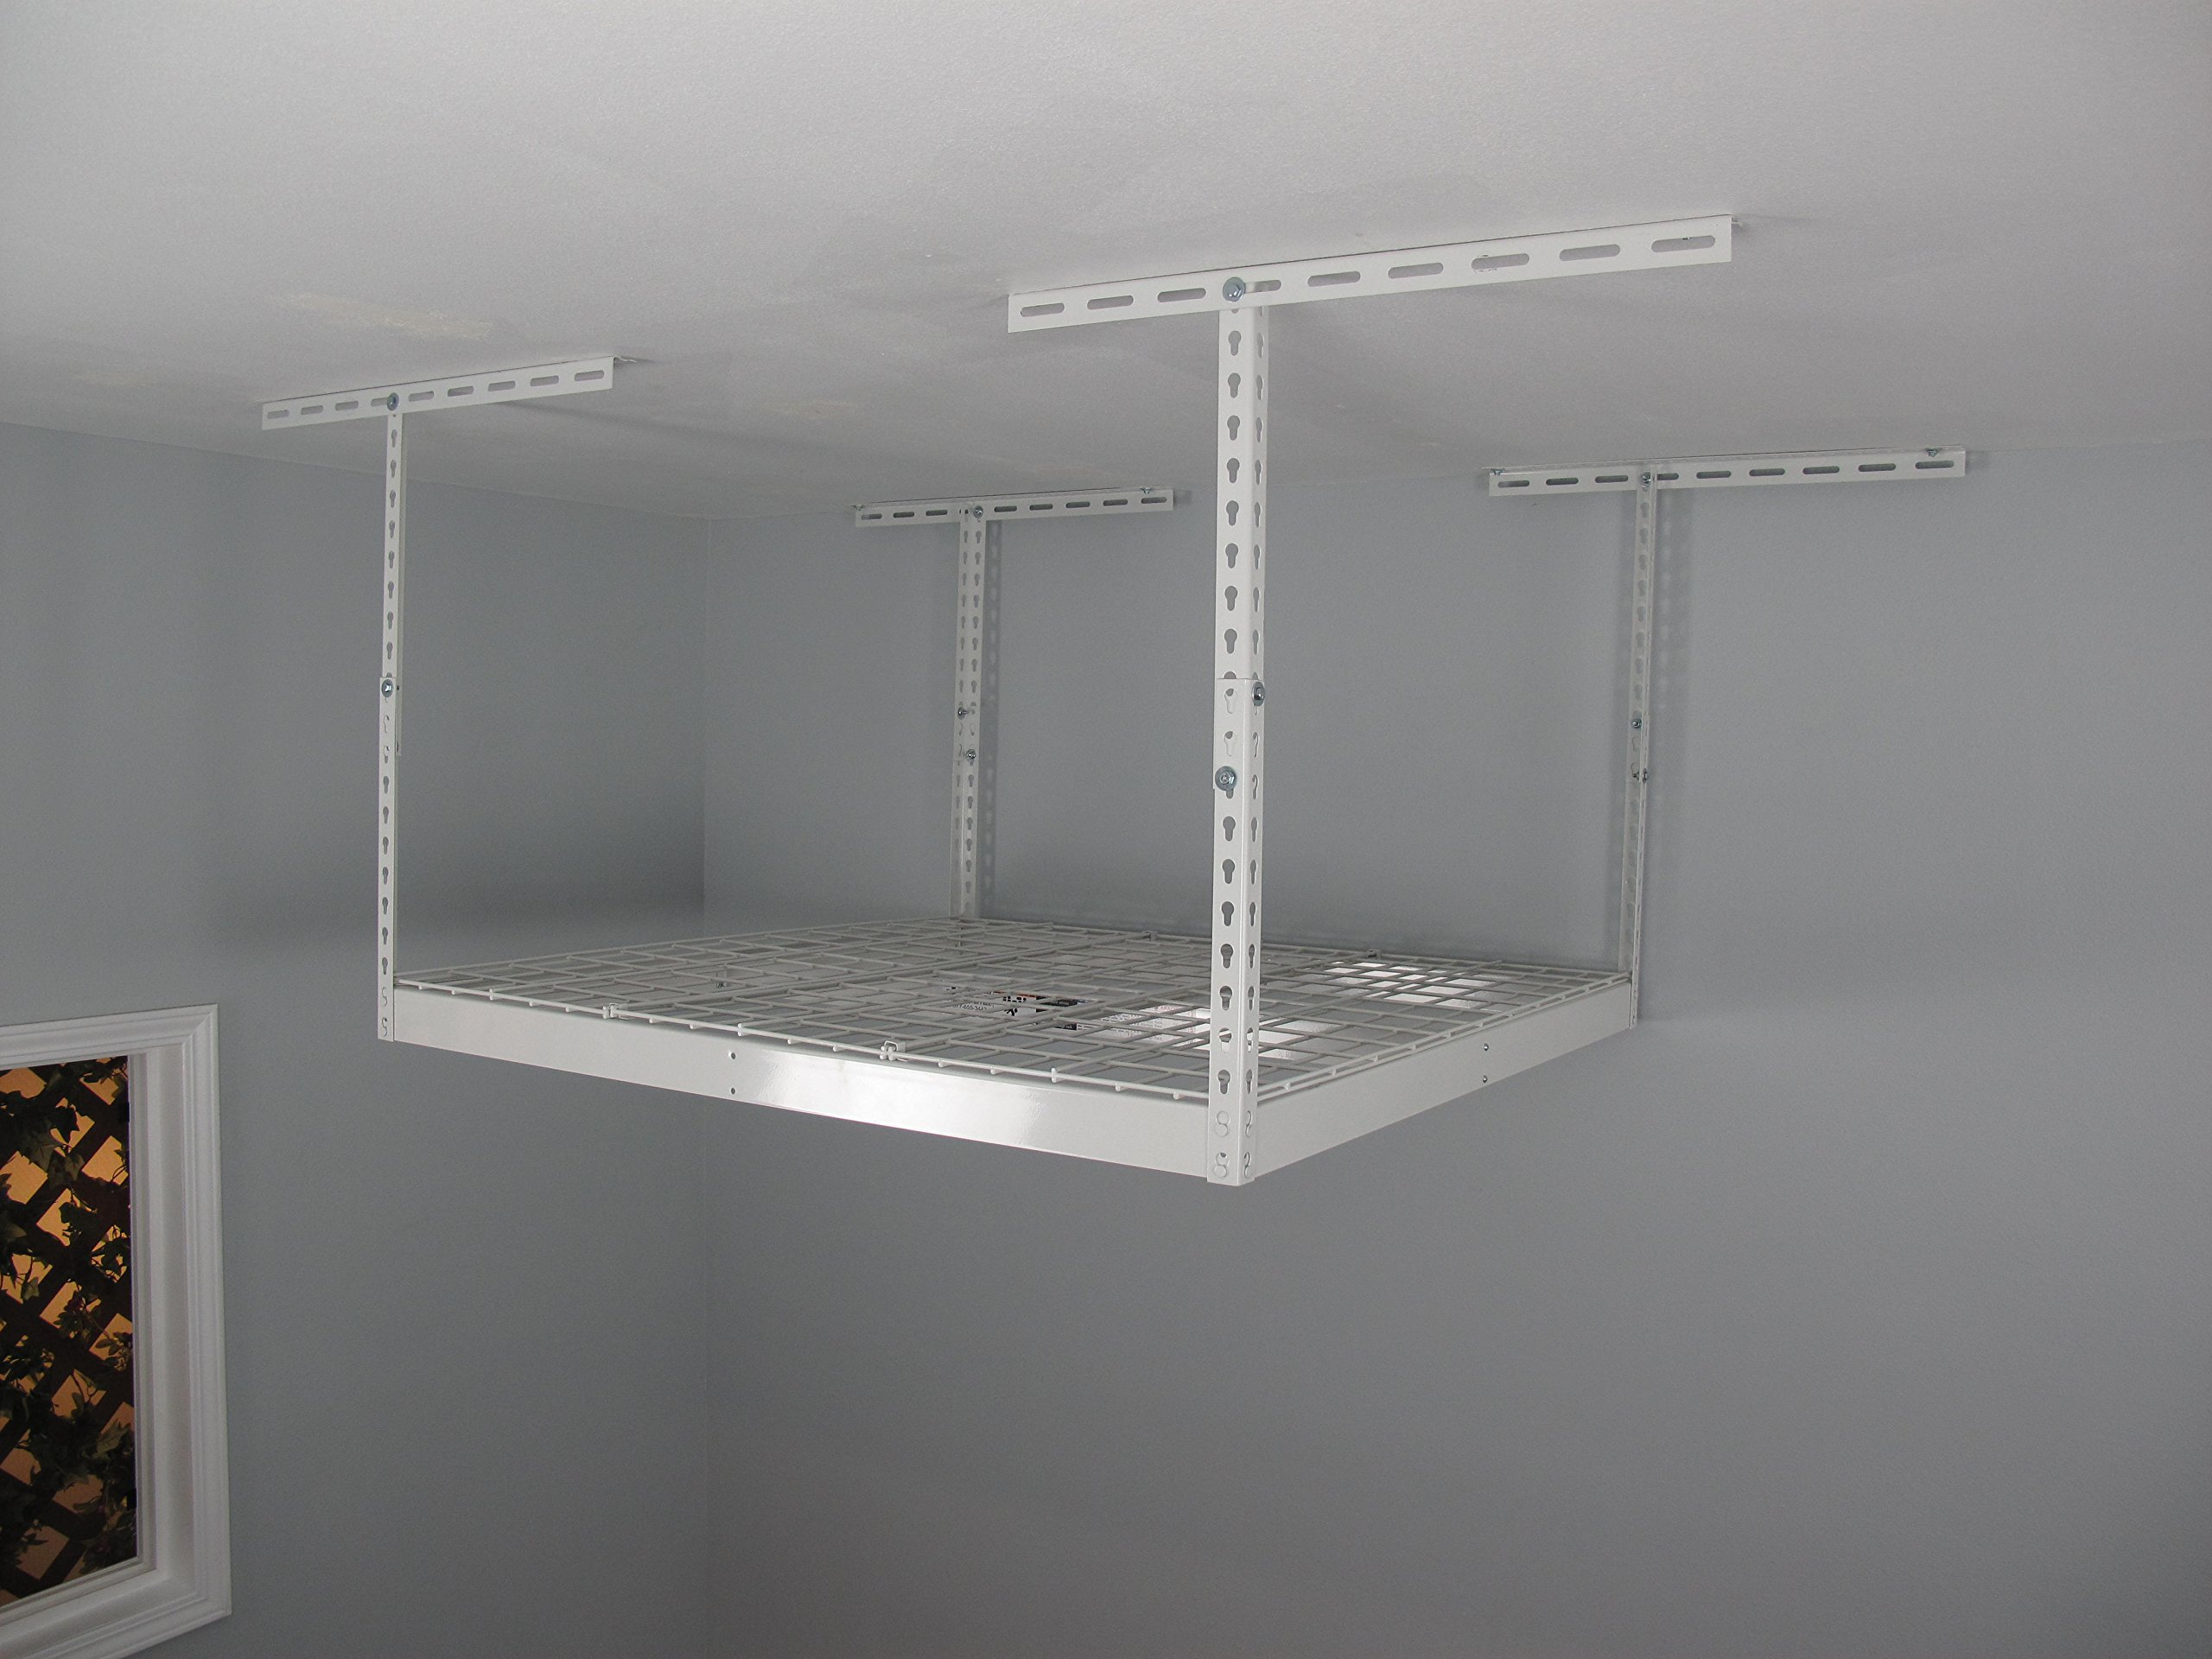 SafeRacks - Medium Duty 4x4 Overhead Storage Rack (24''-45'' Ceiling Drop) - White with 2 Free Hooks by SafeRacks